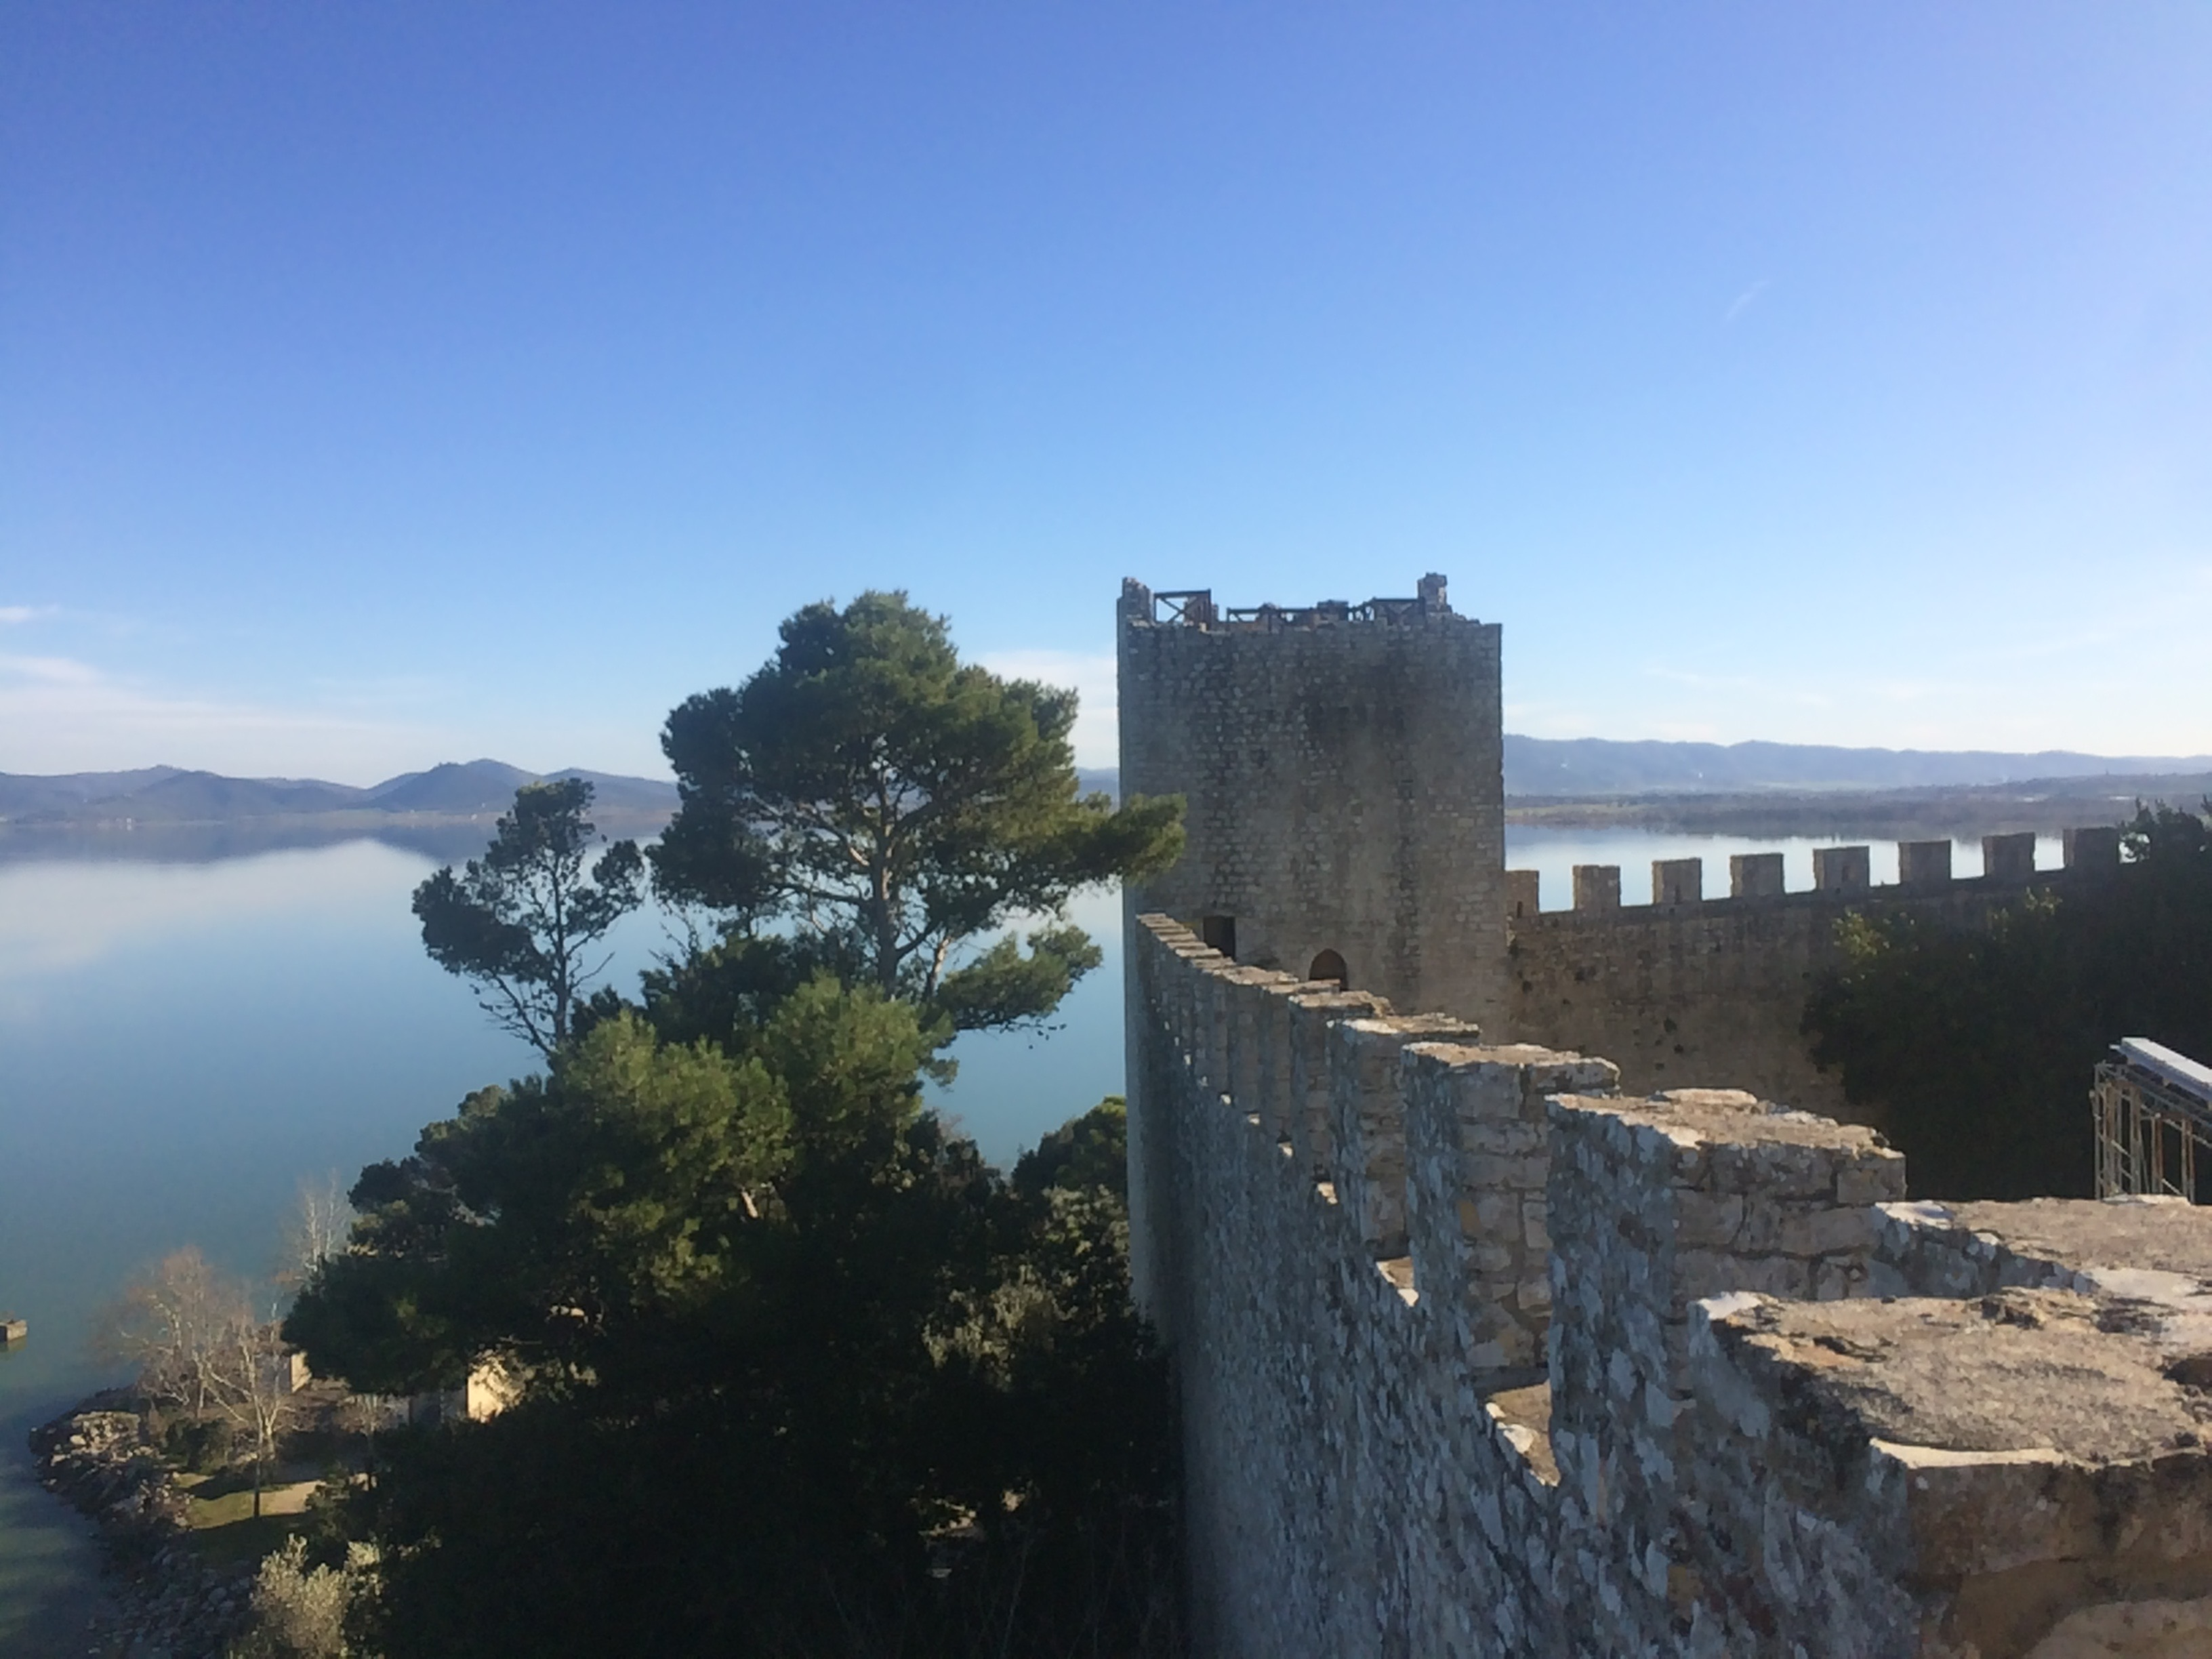 One Of The Castle Towers With Lake Trasimeno In The Background, Rocca Del Leone